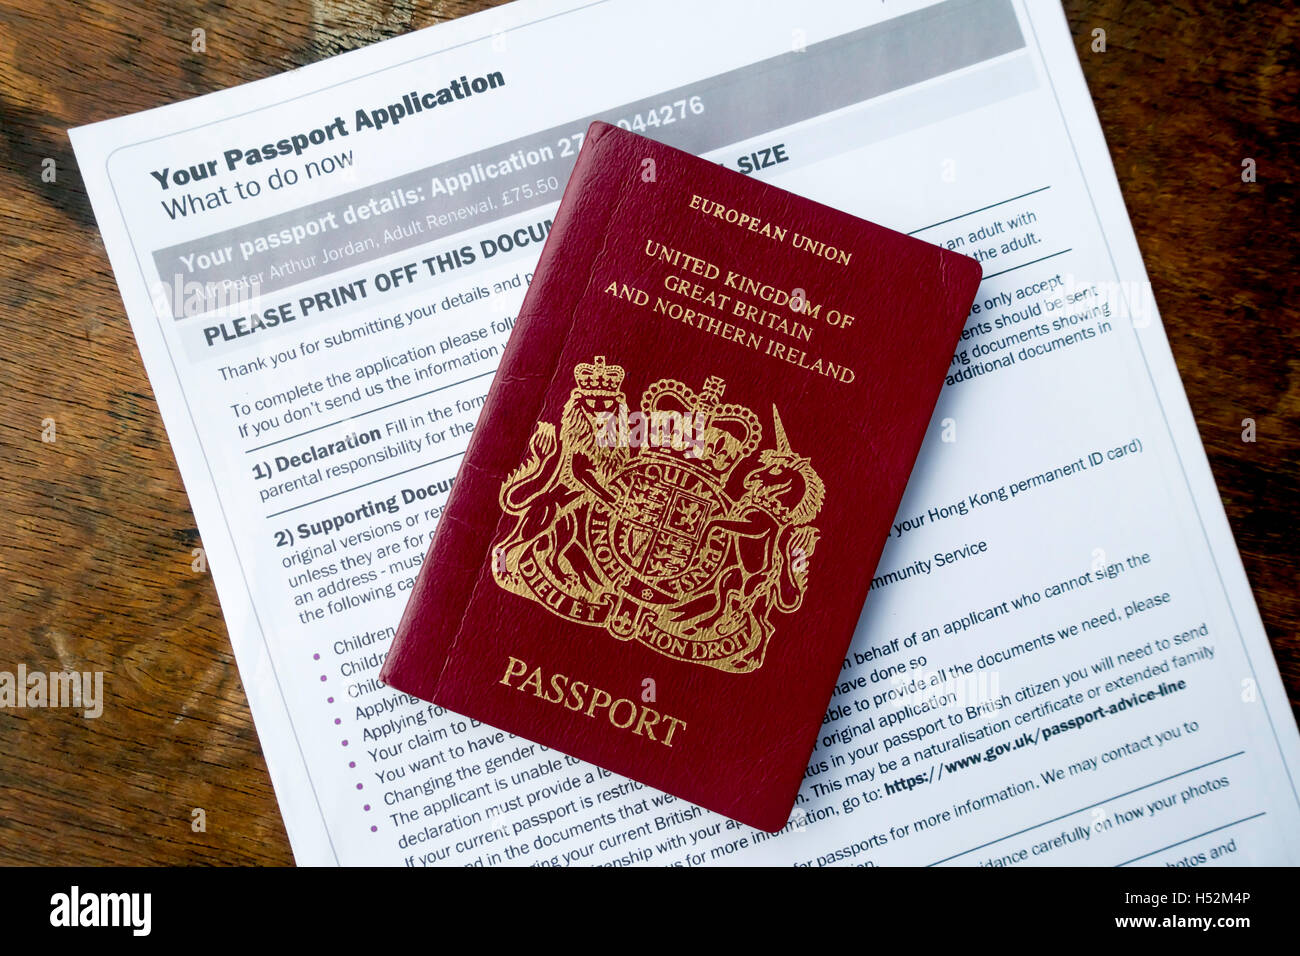 EU United Kingdom Passport with form downloaded as part of the on-line renewal processStock Photo